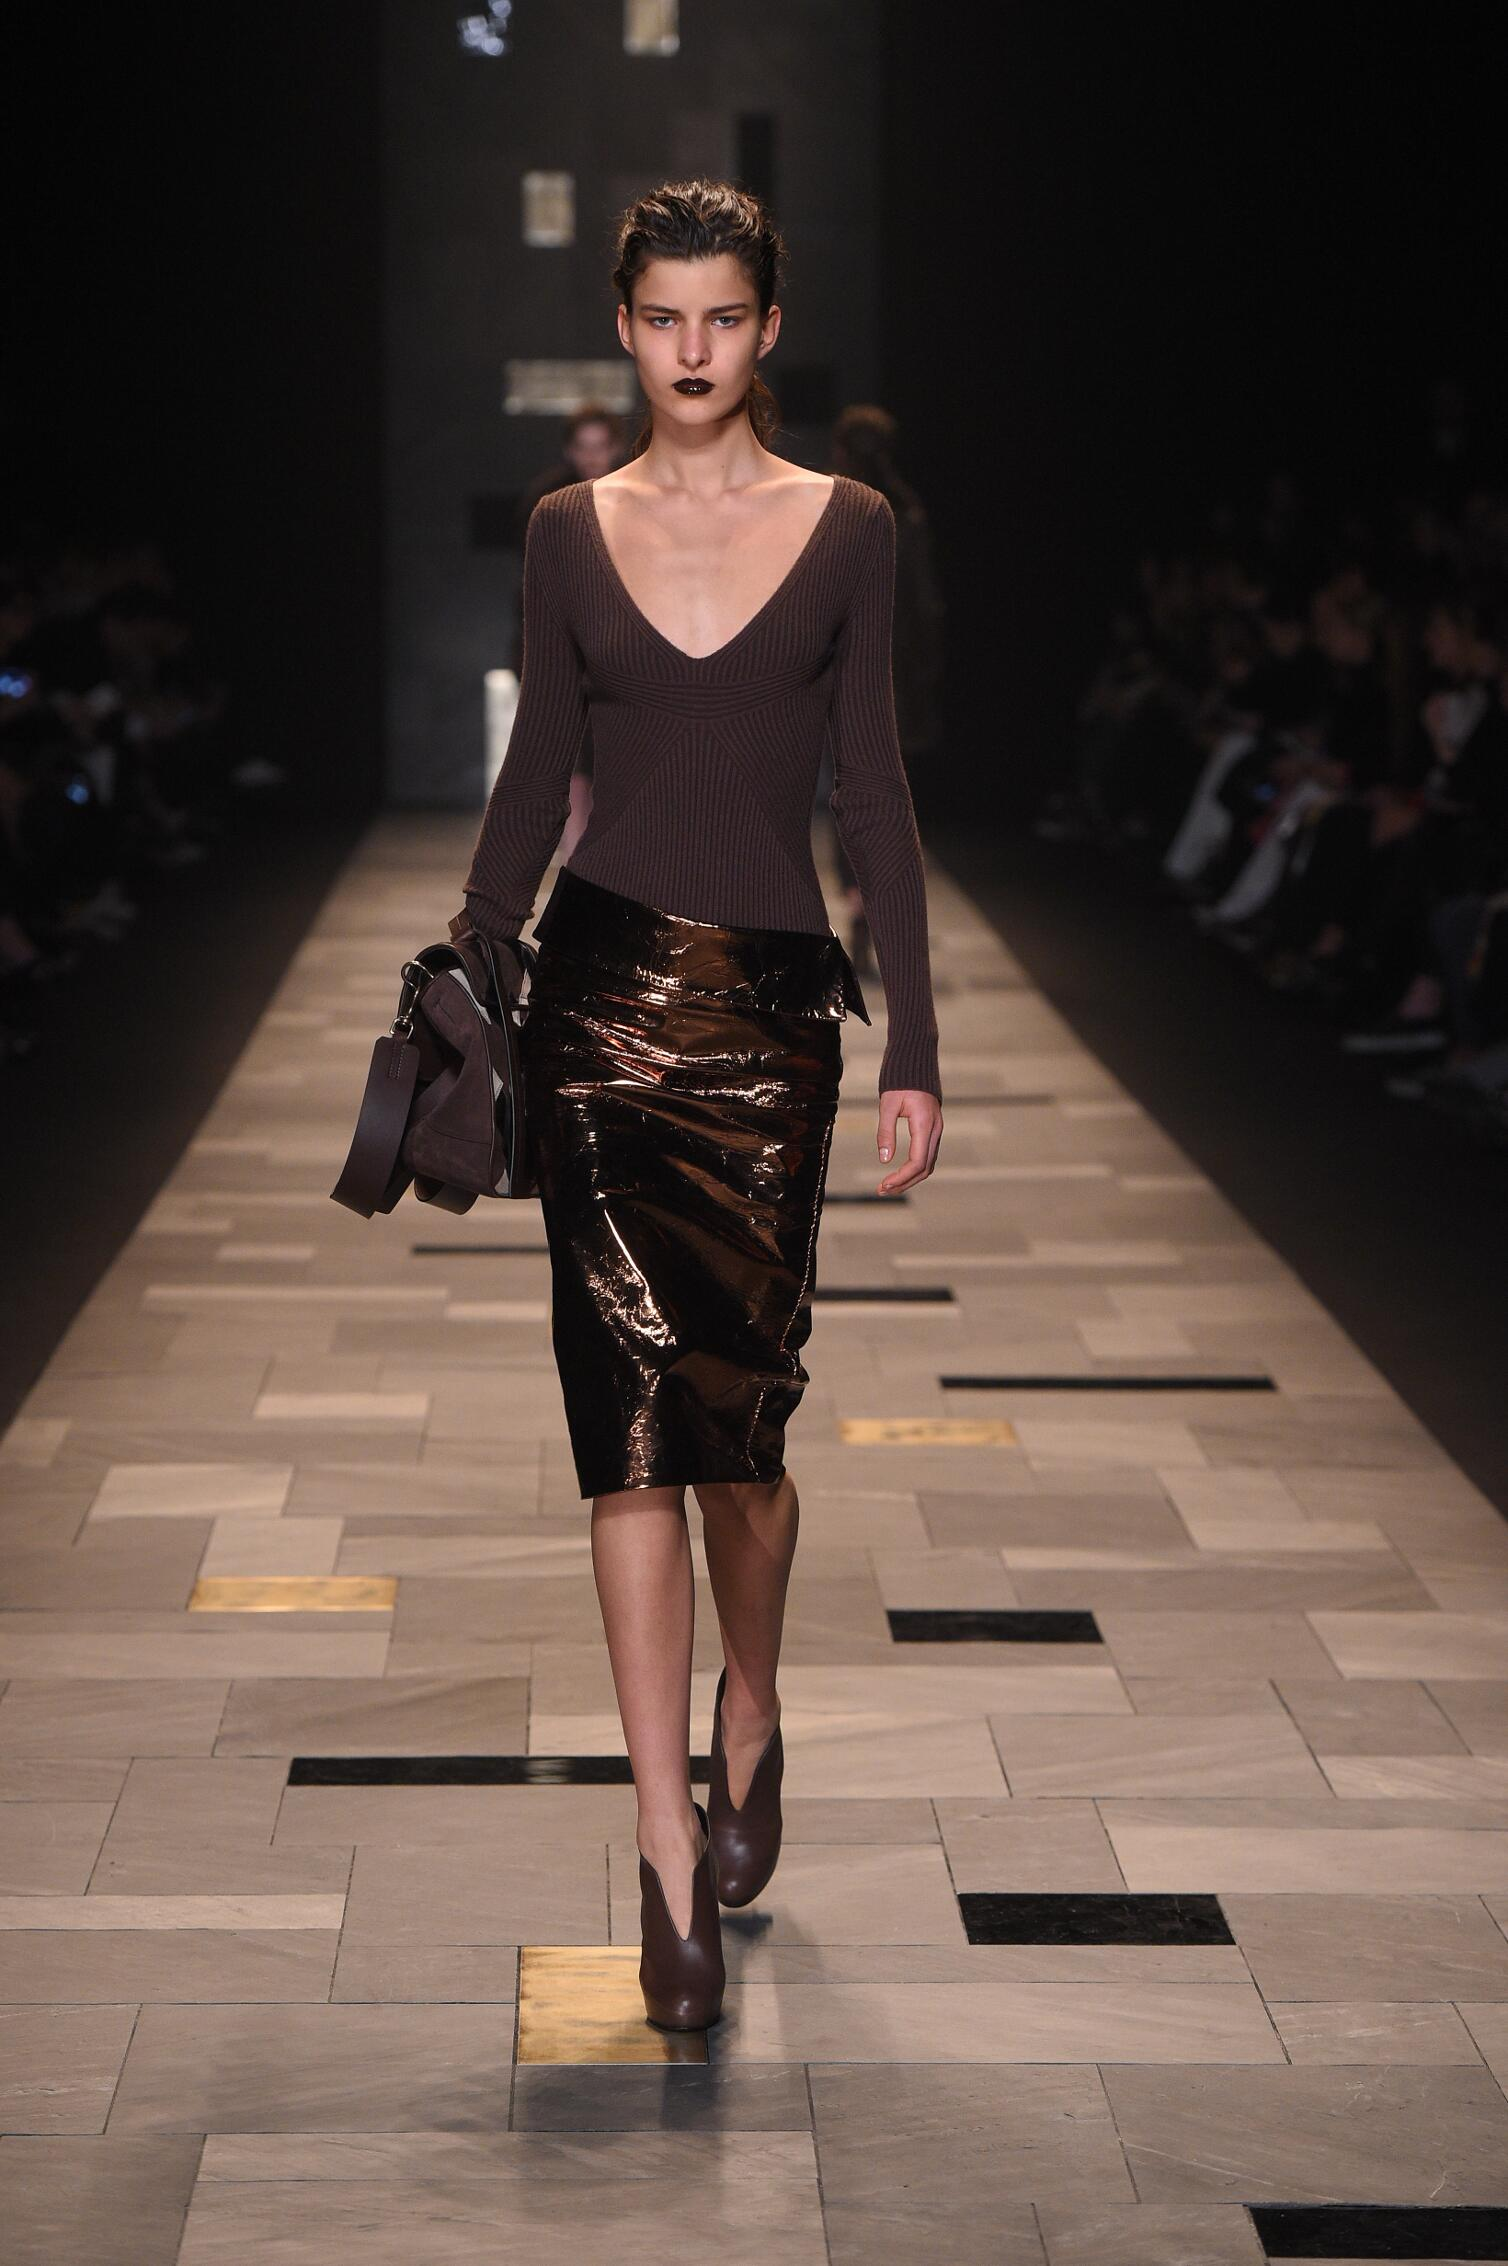 Catwalk Trussardi Fall Winter 2015 16 Women's Collection Milan Fashion Week